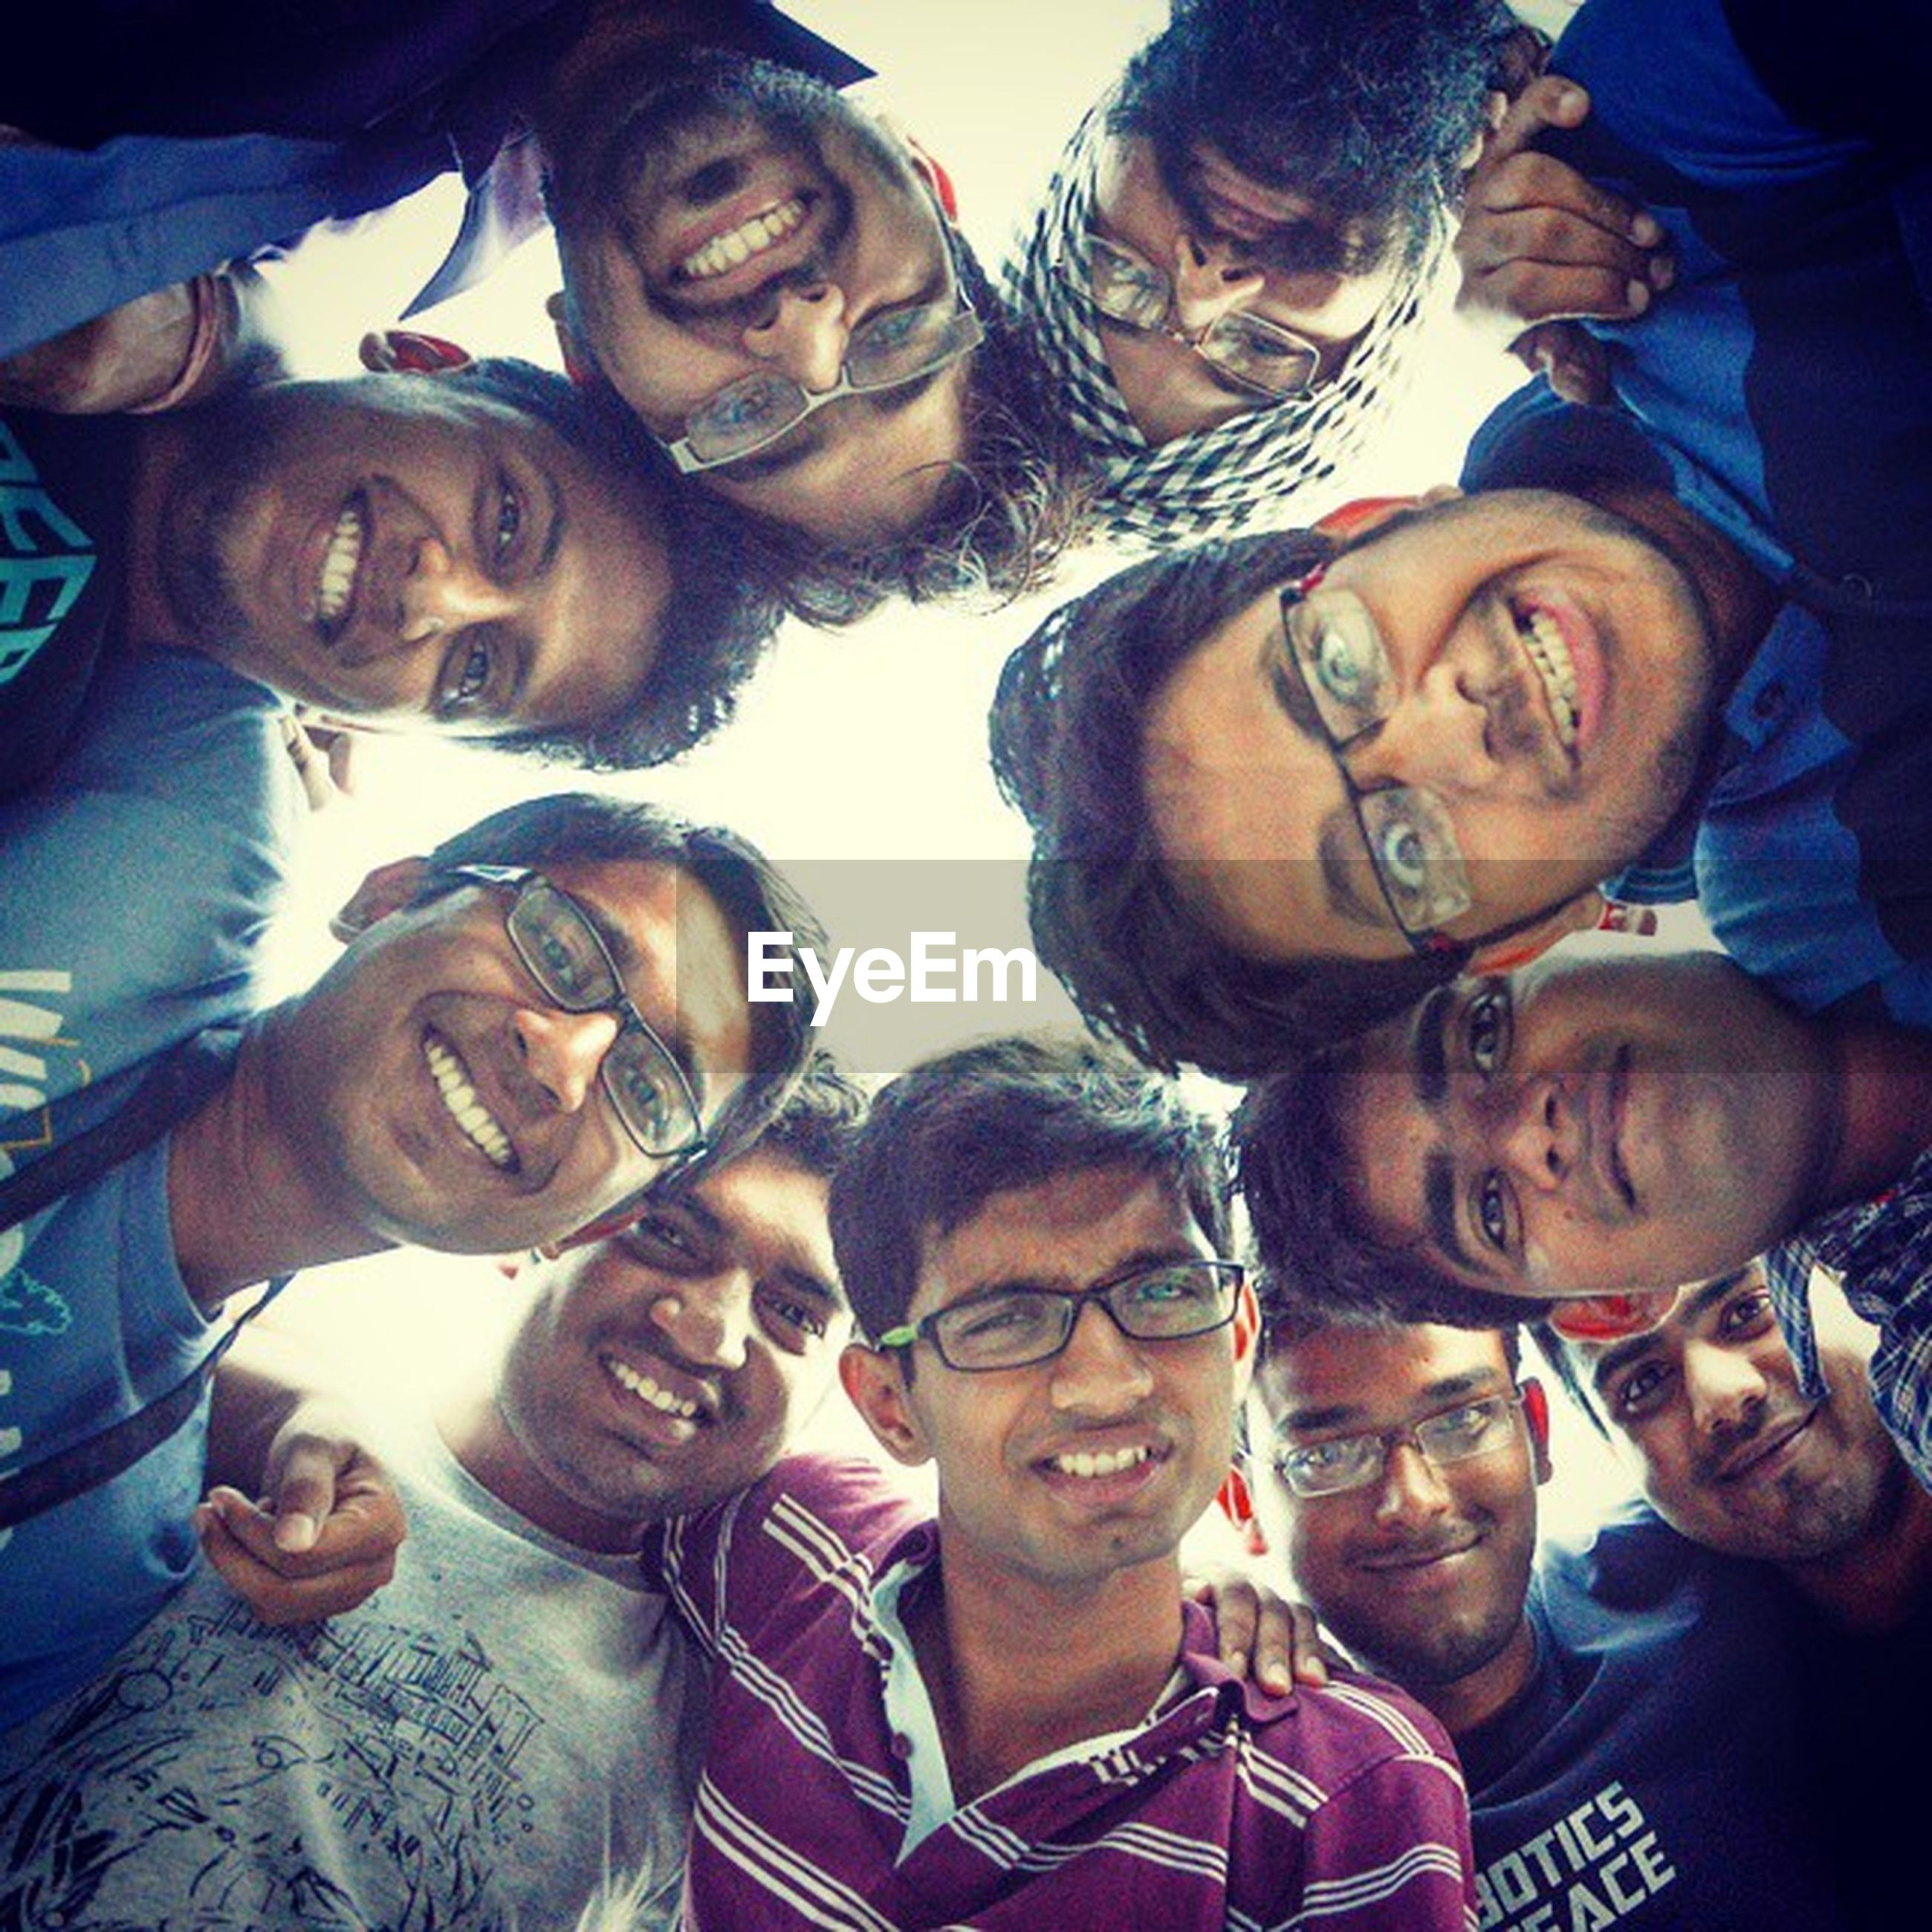 togetherness, portrait, lifestyles, person, bonding, young men, leisure activity, looking at camera, happiness, smiling, love, friendship, front view, young adult, mid adult men, casual clothing, enjoyment, fun